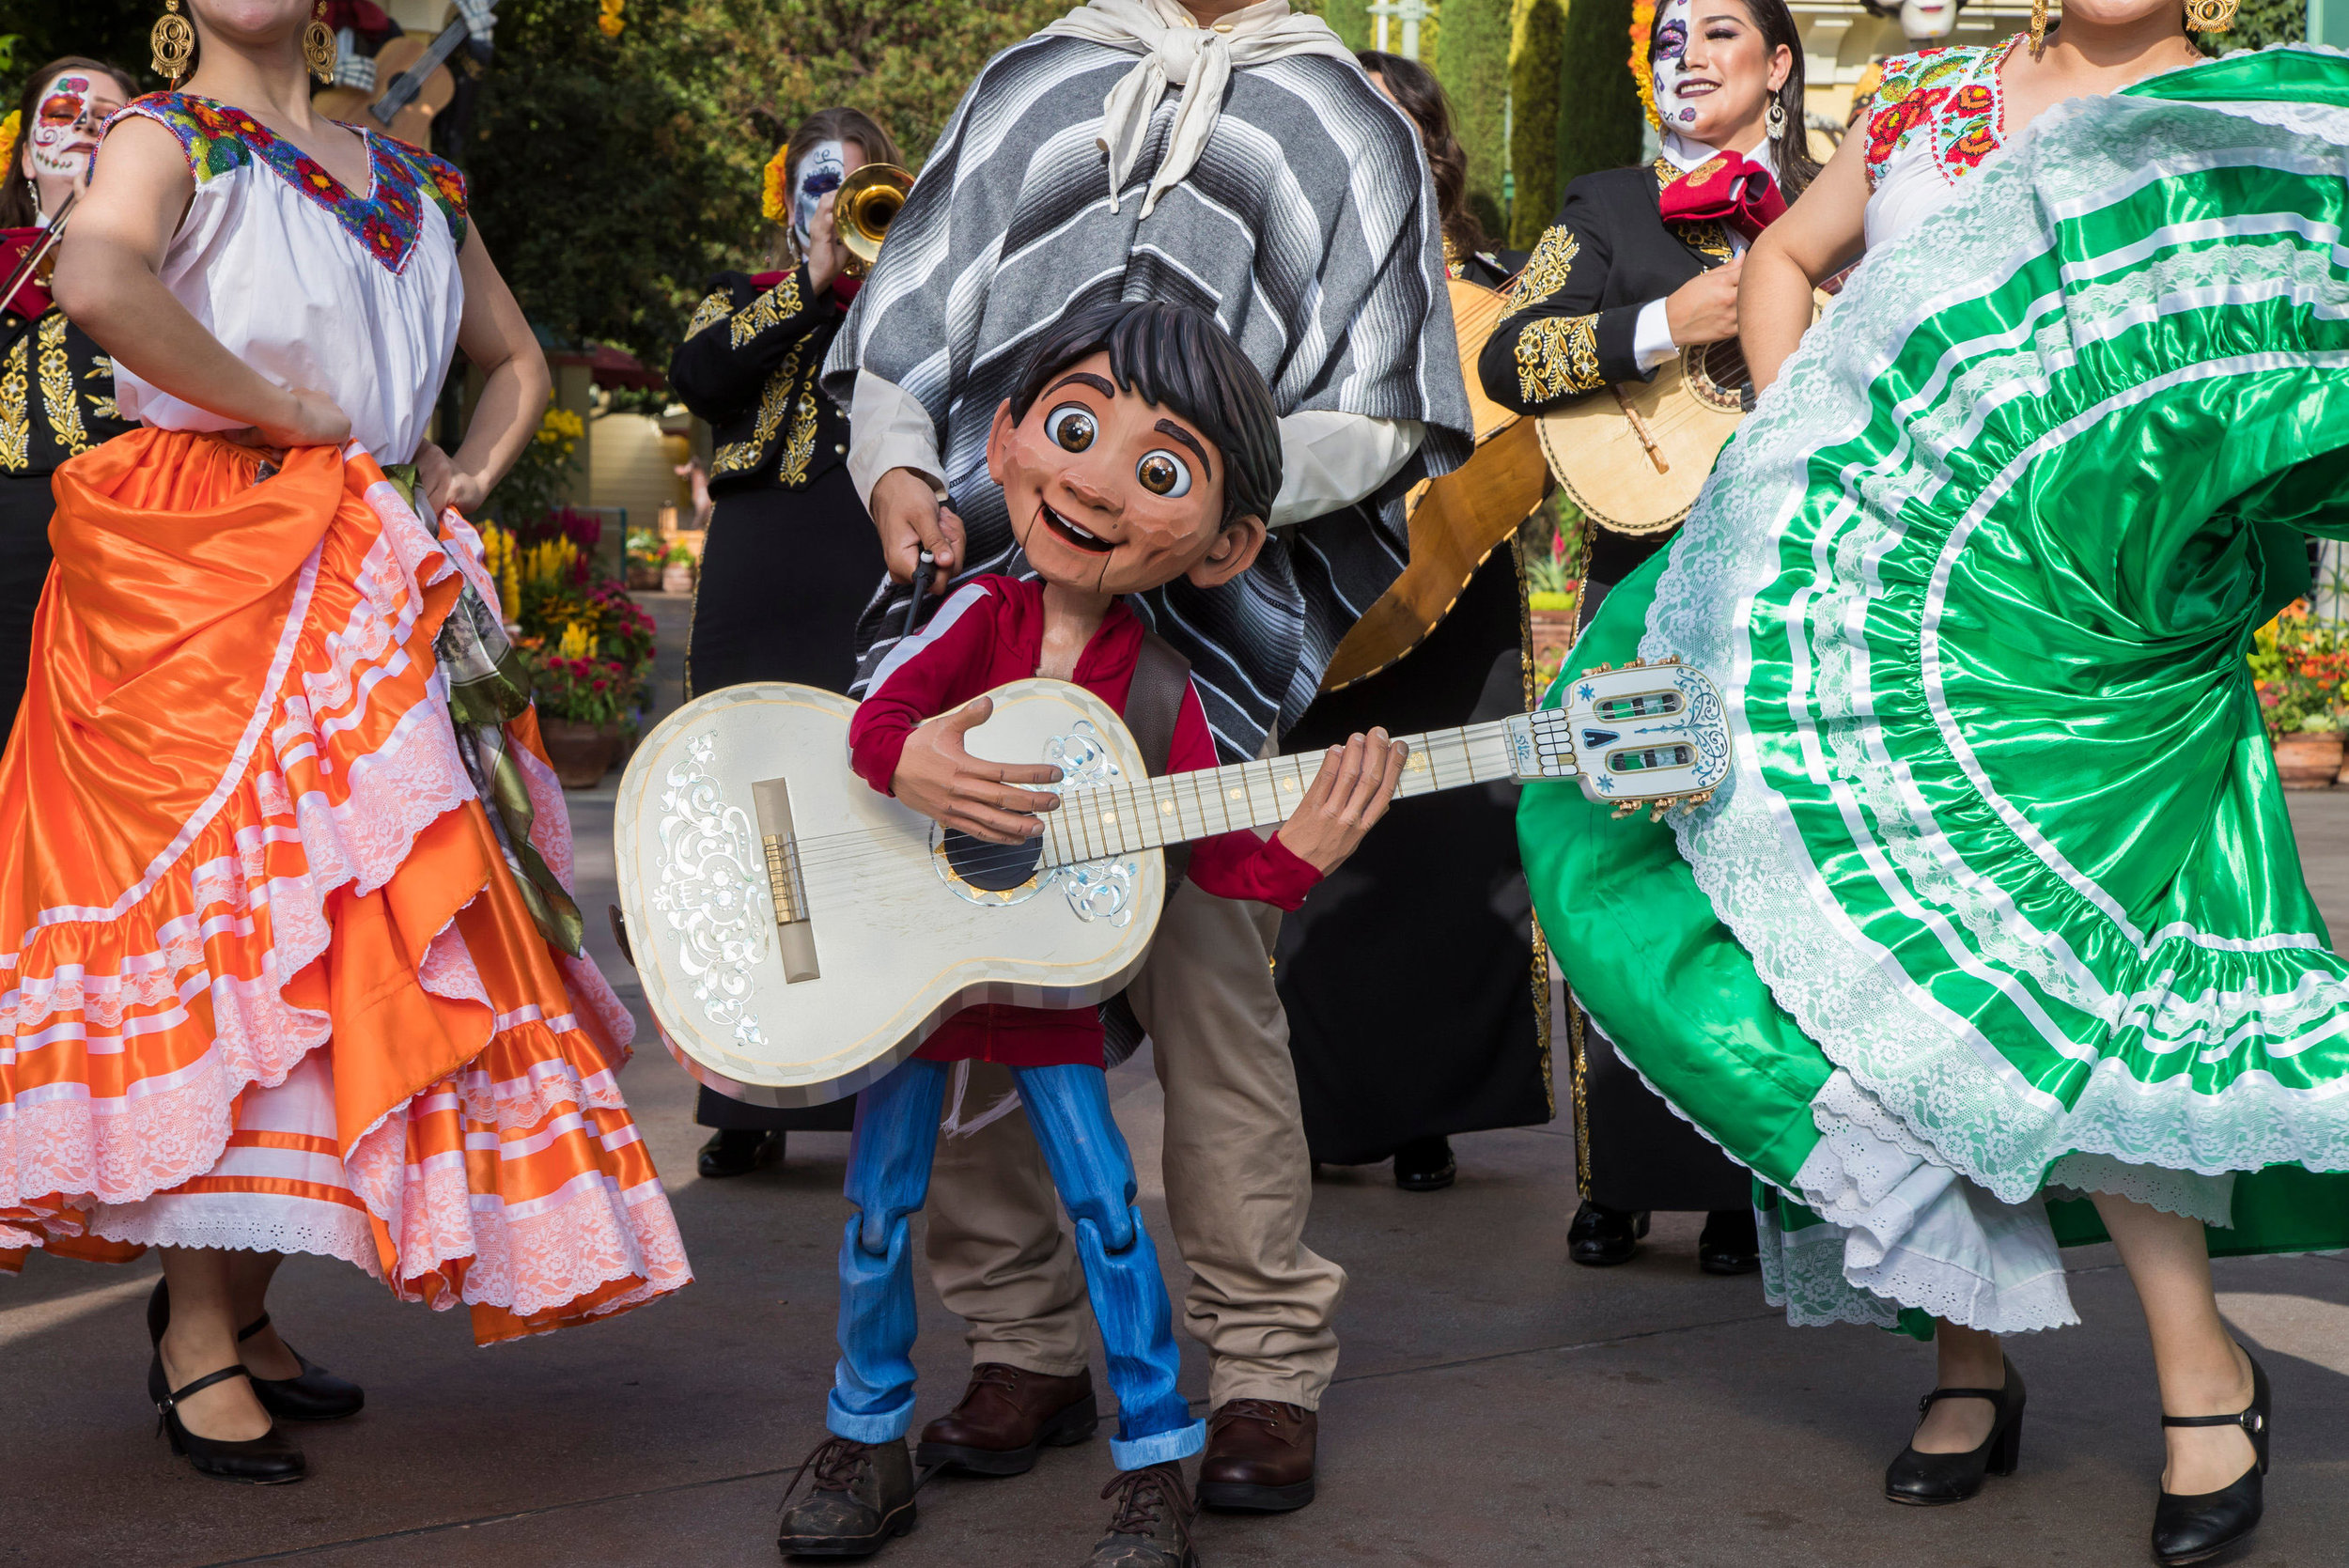 A Musical Celebration of Coco, taking place Sept. 6-Oct. 31, 2019, at Disney California Adventure Park, brings together the traveling Storytellers of Plaza de la Familia. In this festive performance, Miguel is joined by singing host Mateo, the Grammy® Award-winning Mariachi Divas and authentic folklórico dancers. The group entertains guests with beloved songs from the film, transporting everyone into the story of young Miguel's fantastical journey. Disneyland Resort is located in Anaheim, Calif. (Joshua Sudock/Disneyland Resort)